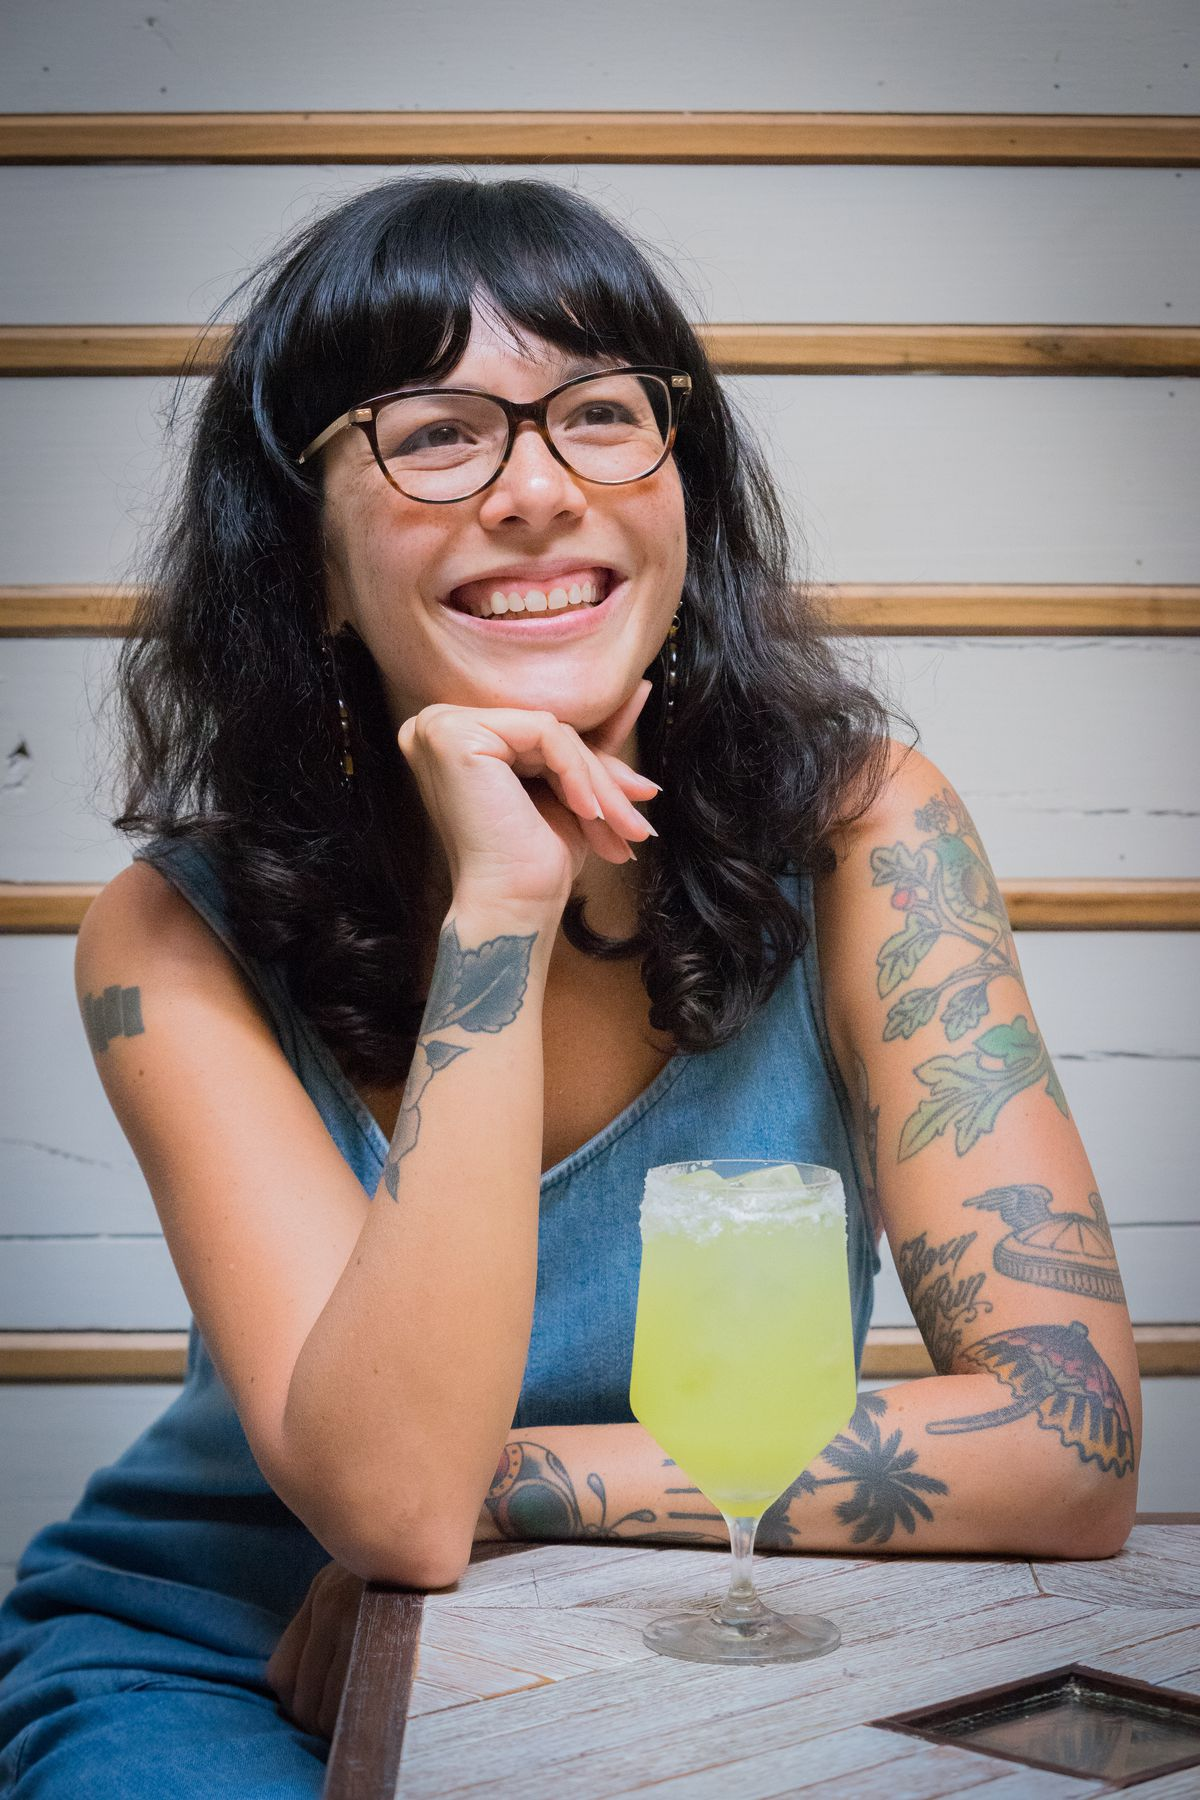 Claire Sprouse, owner of Hunky Dory, sits in blue overalls besides a green-yellow cocktail on ice.